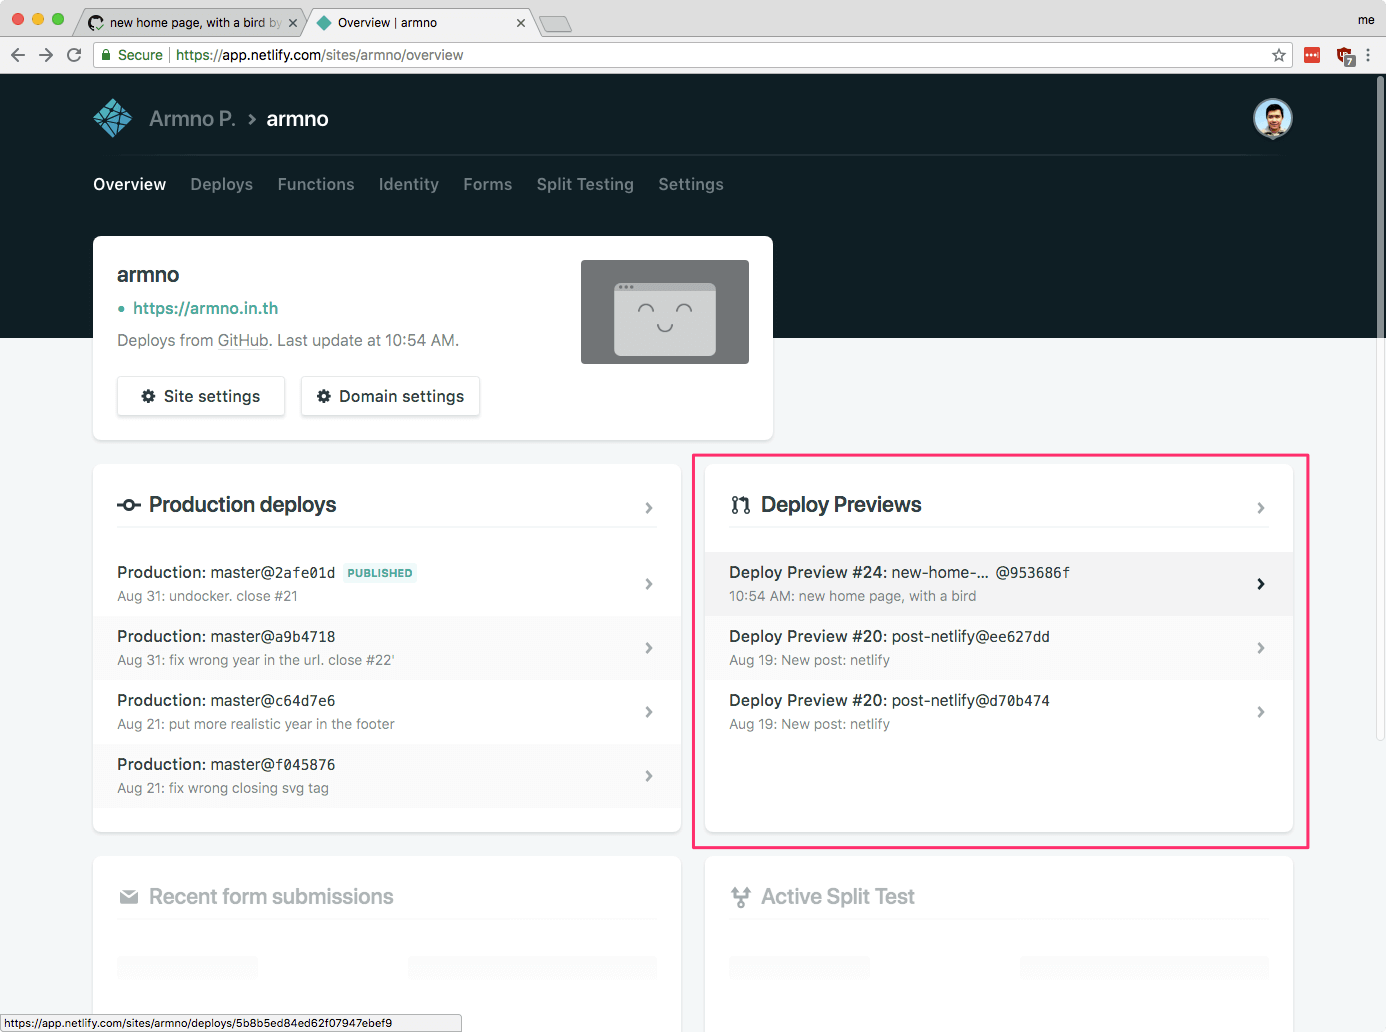 deploy previews บน dashboard ของ Netlify